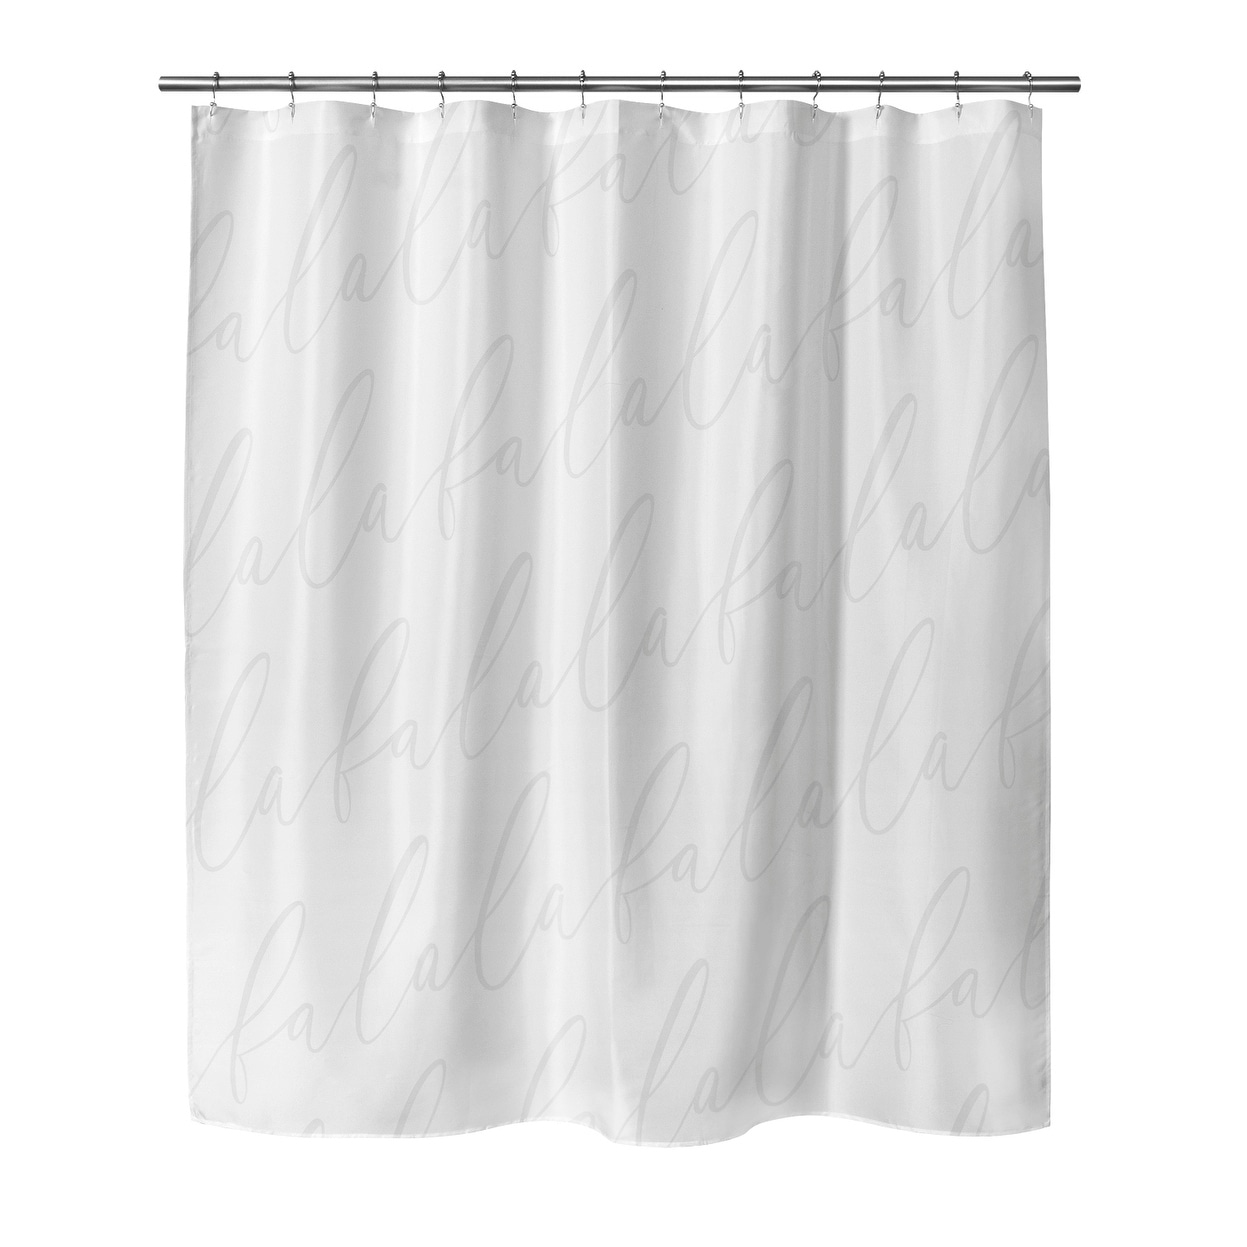 How To Make Shower Curtain Falala Shower Curtain By The Stylescape